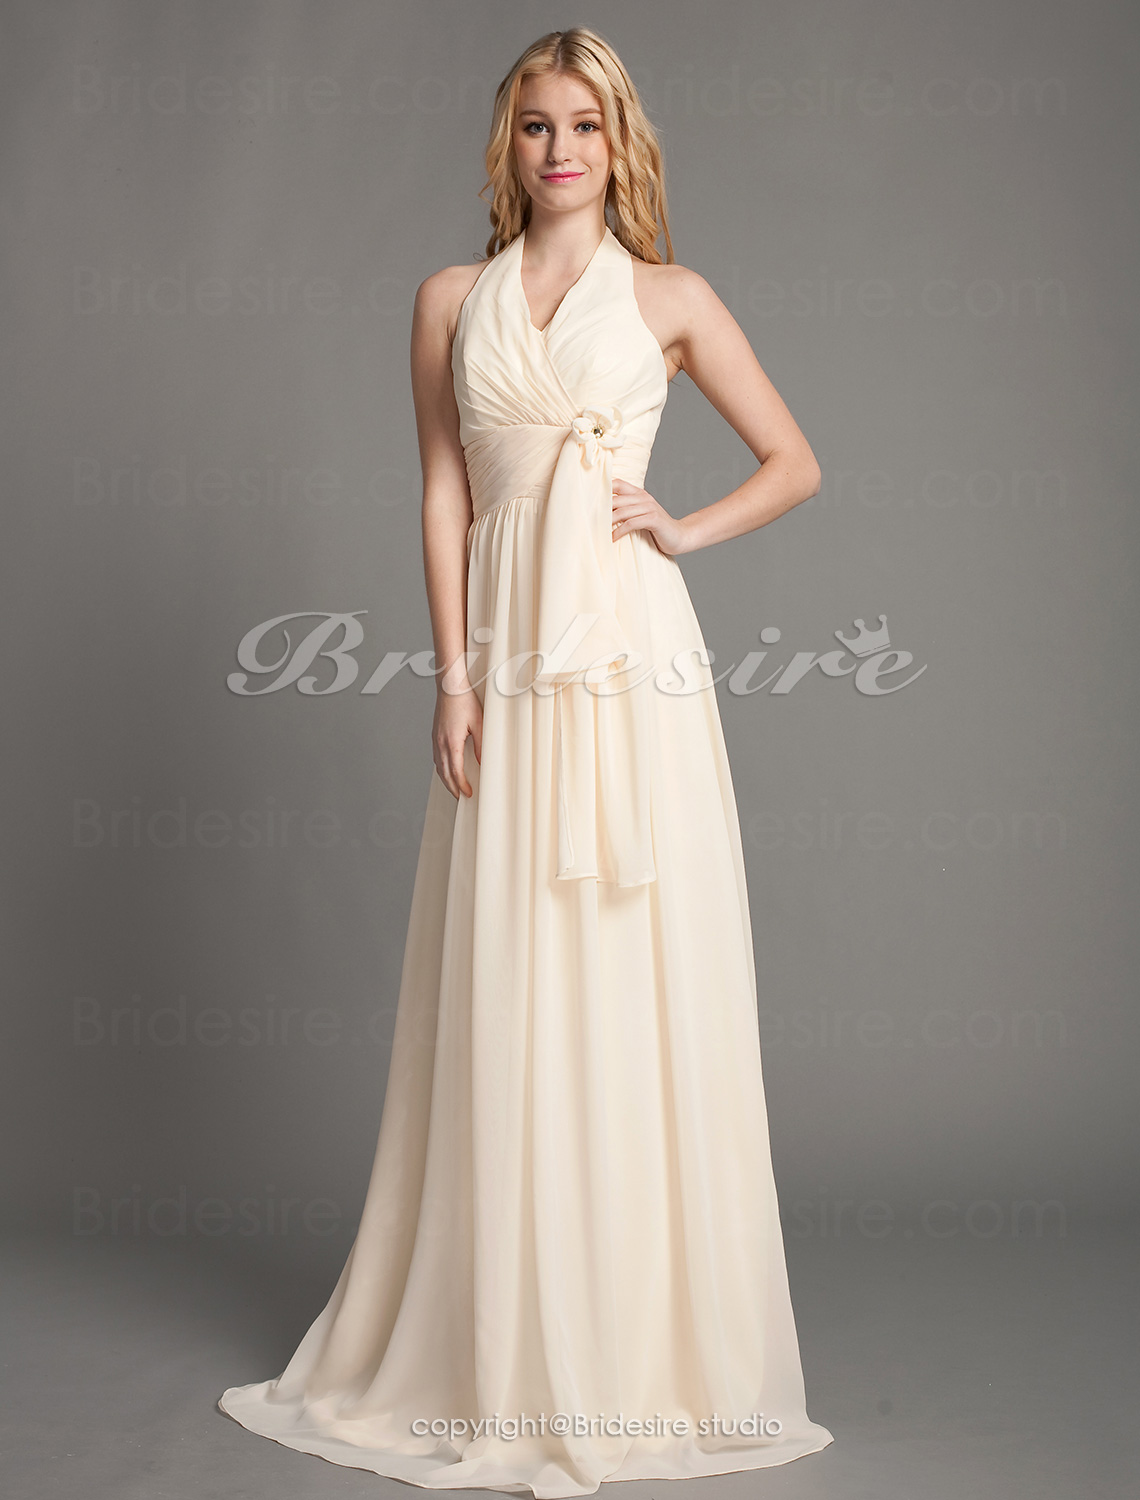 A-line Floor-length Halter Elegant Chiffon Bridesmaid Dress